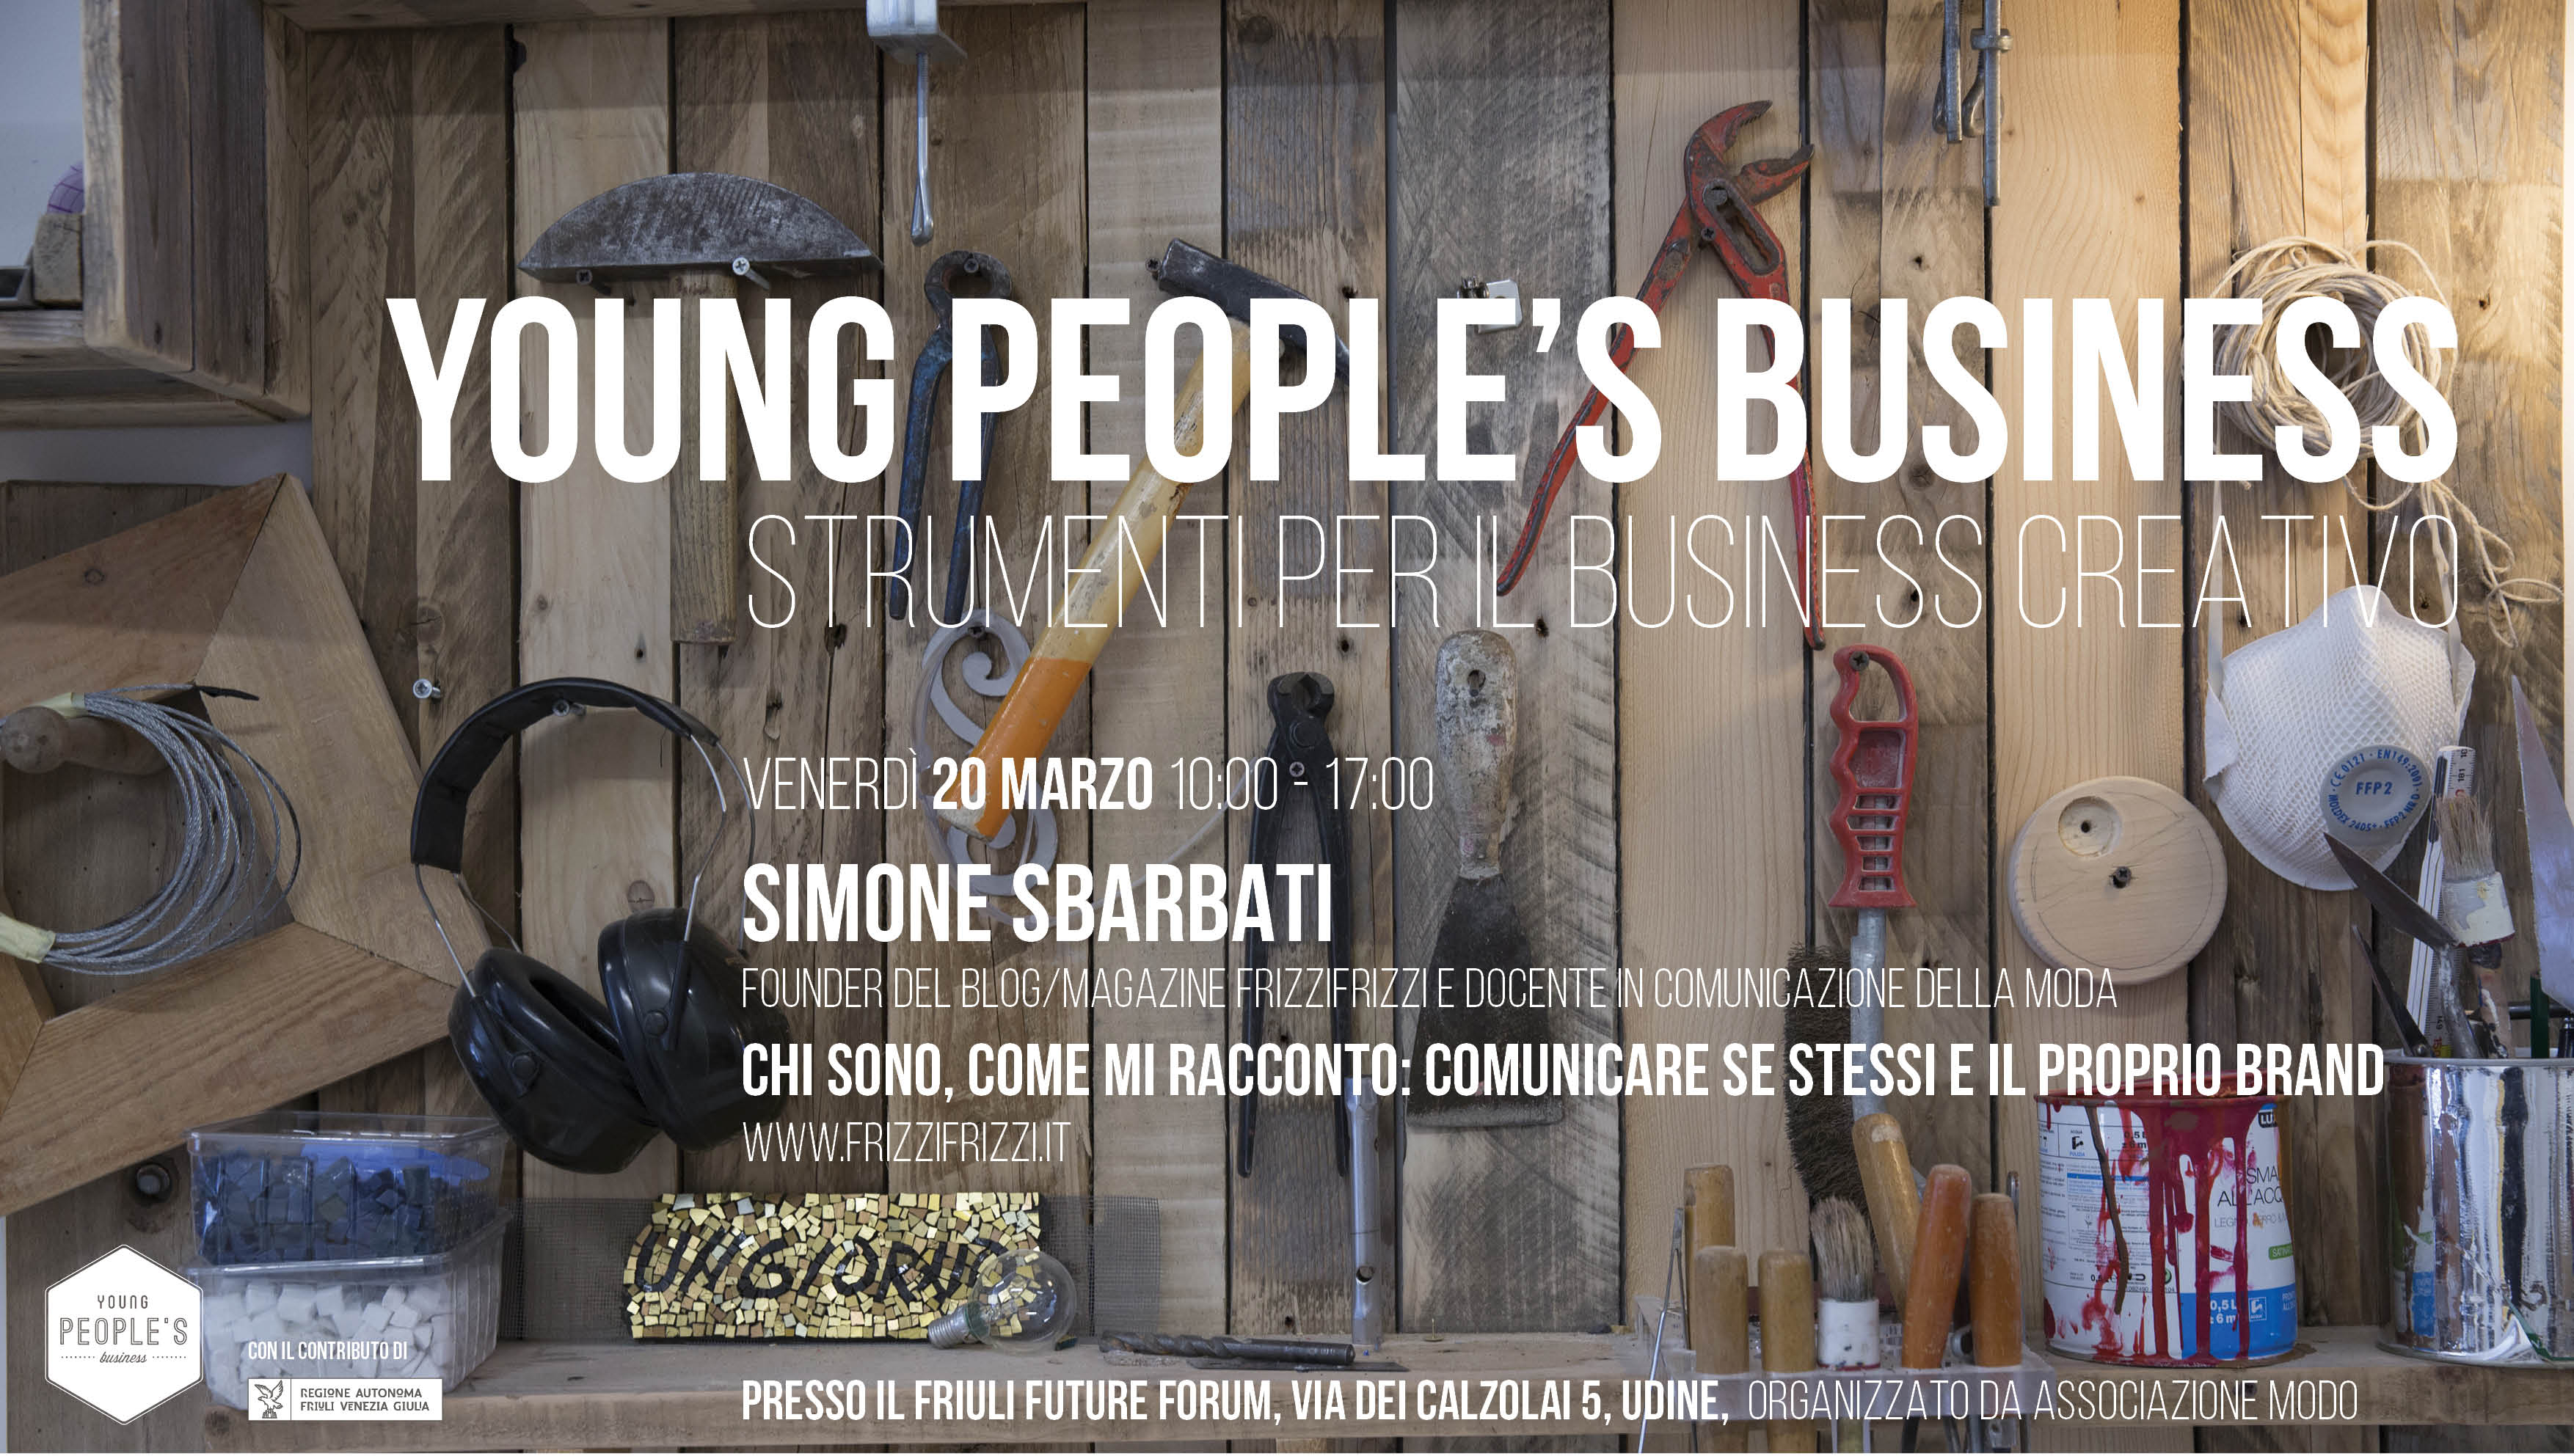 (Italiano) Young people's business 2015 con Simone Sbarbati e Enrica Civello